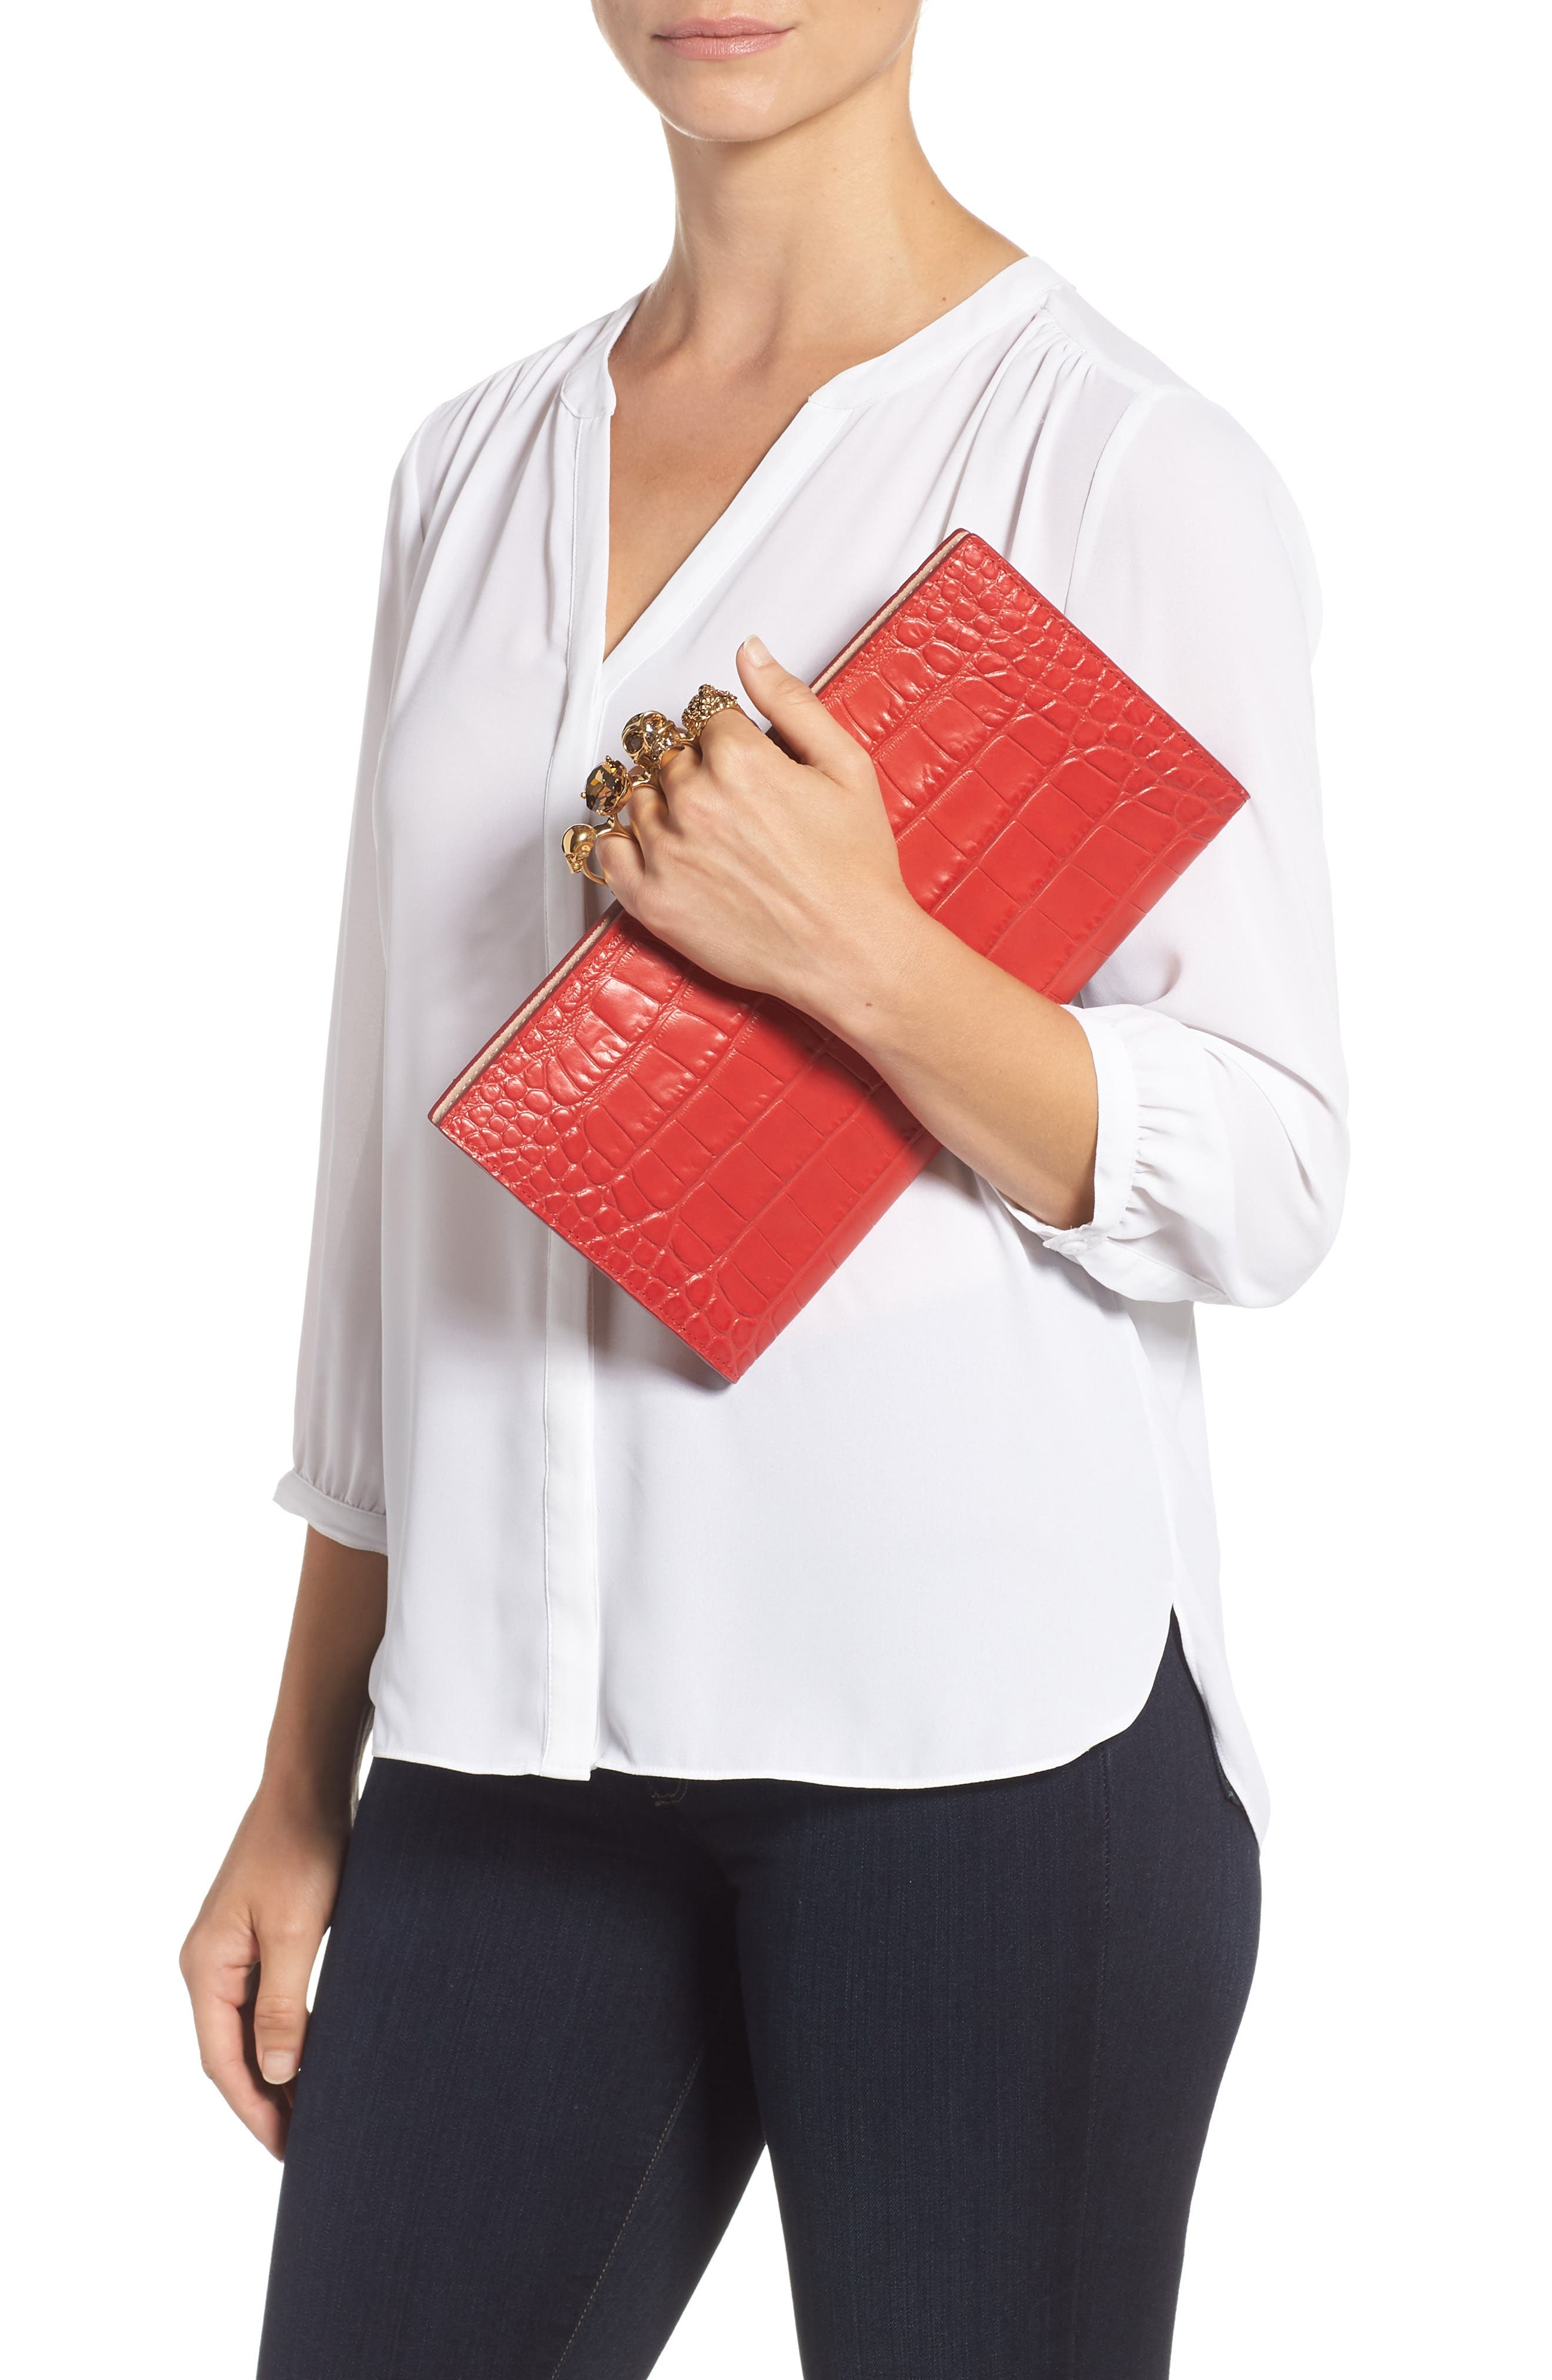 Croc Embossed Leather Knuckle Clutch,                             Alternate thumbnail 2, color,                             SCARLET RED